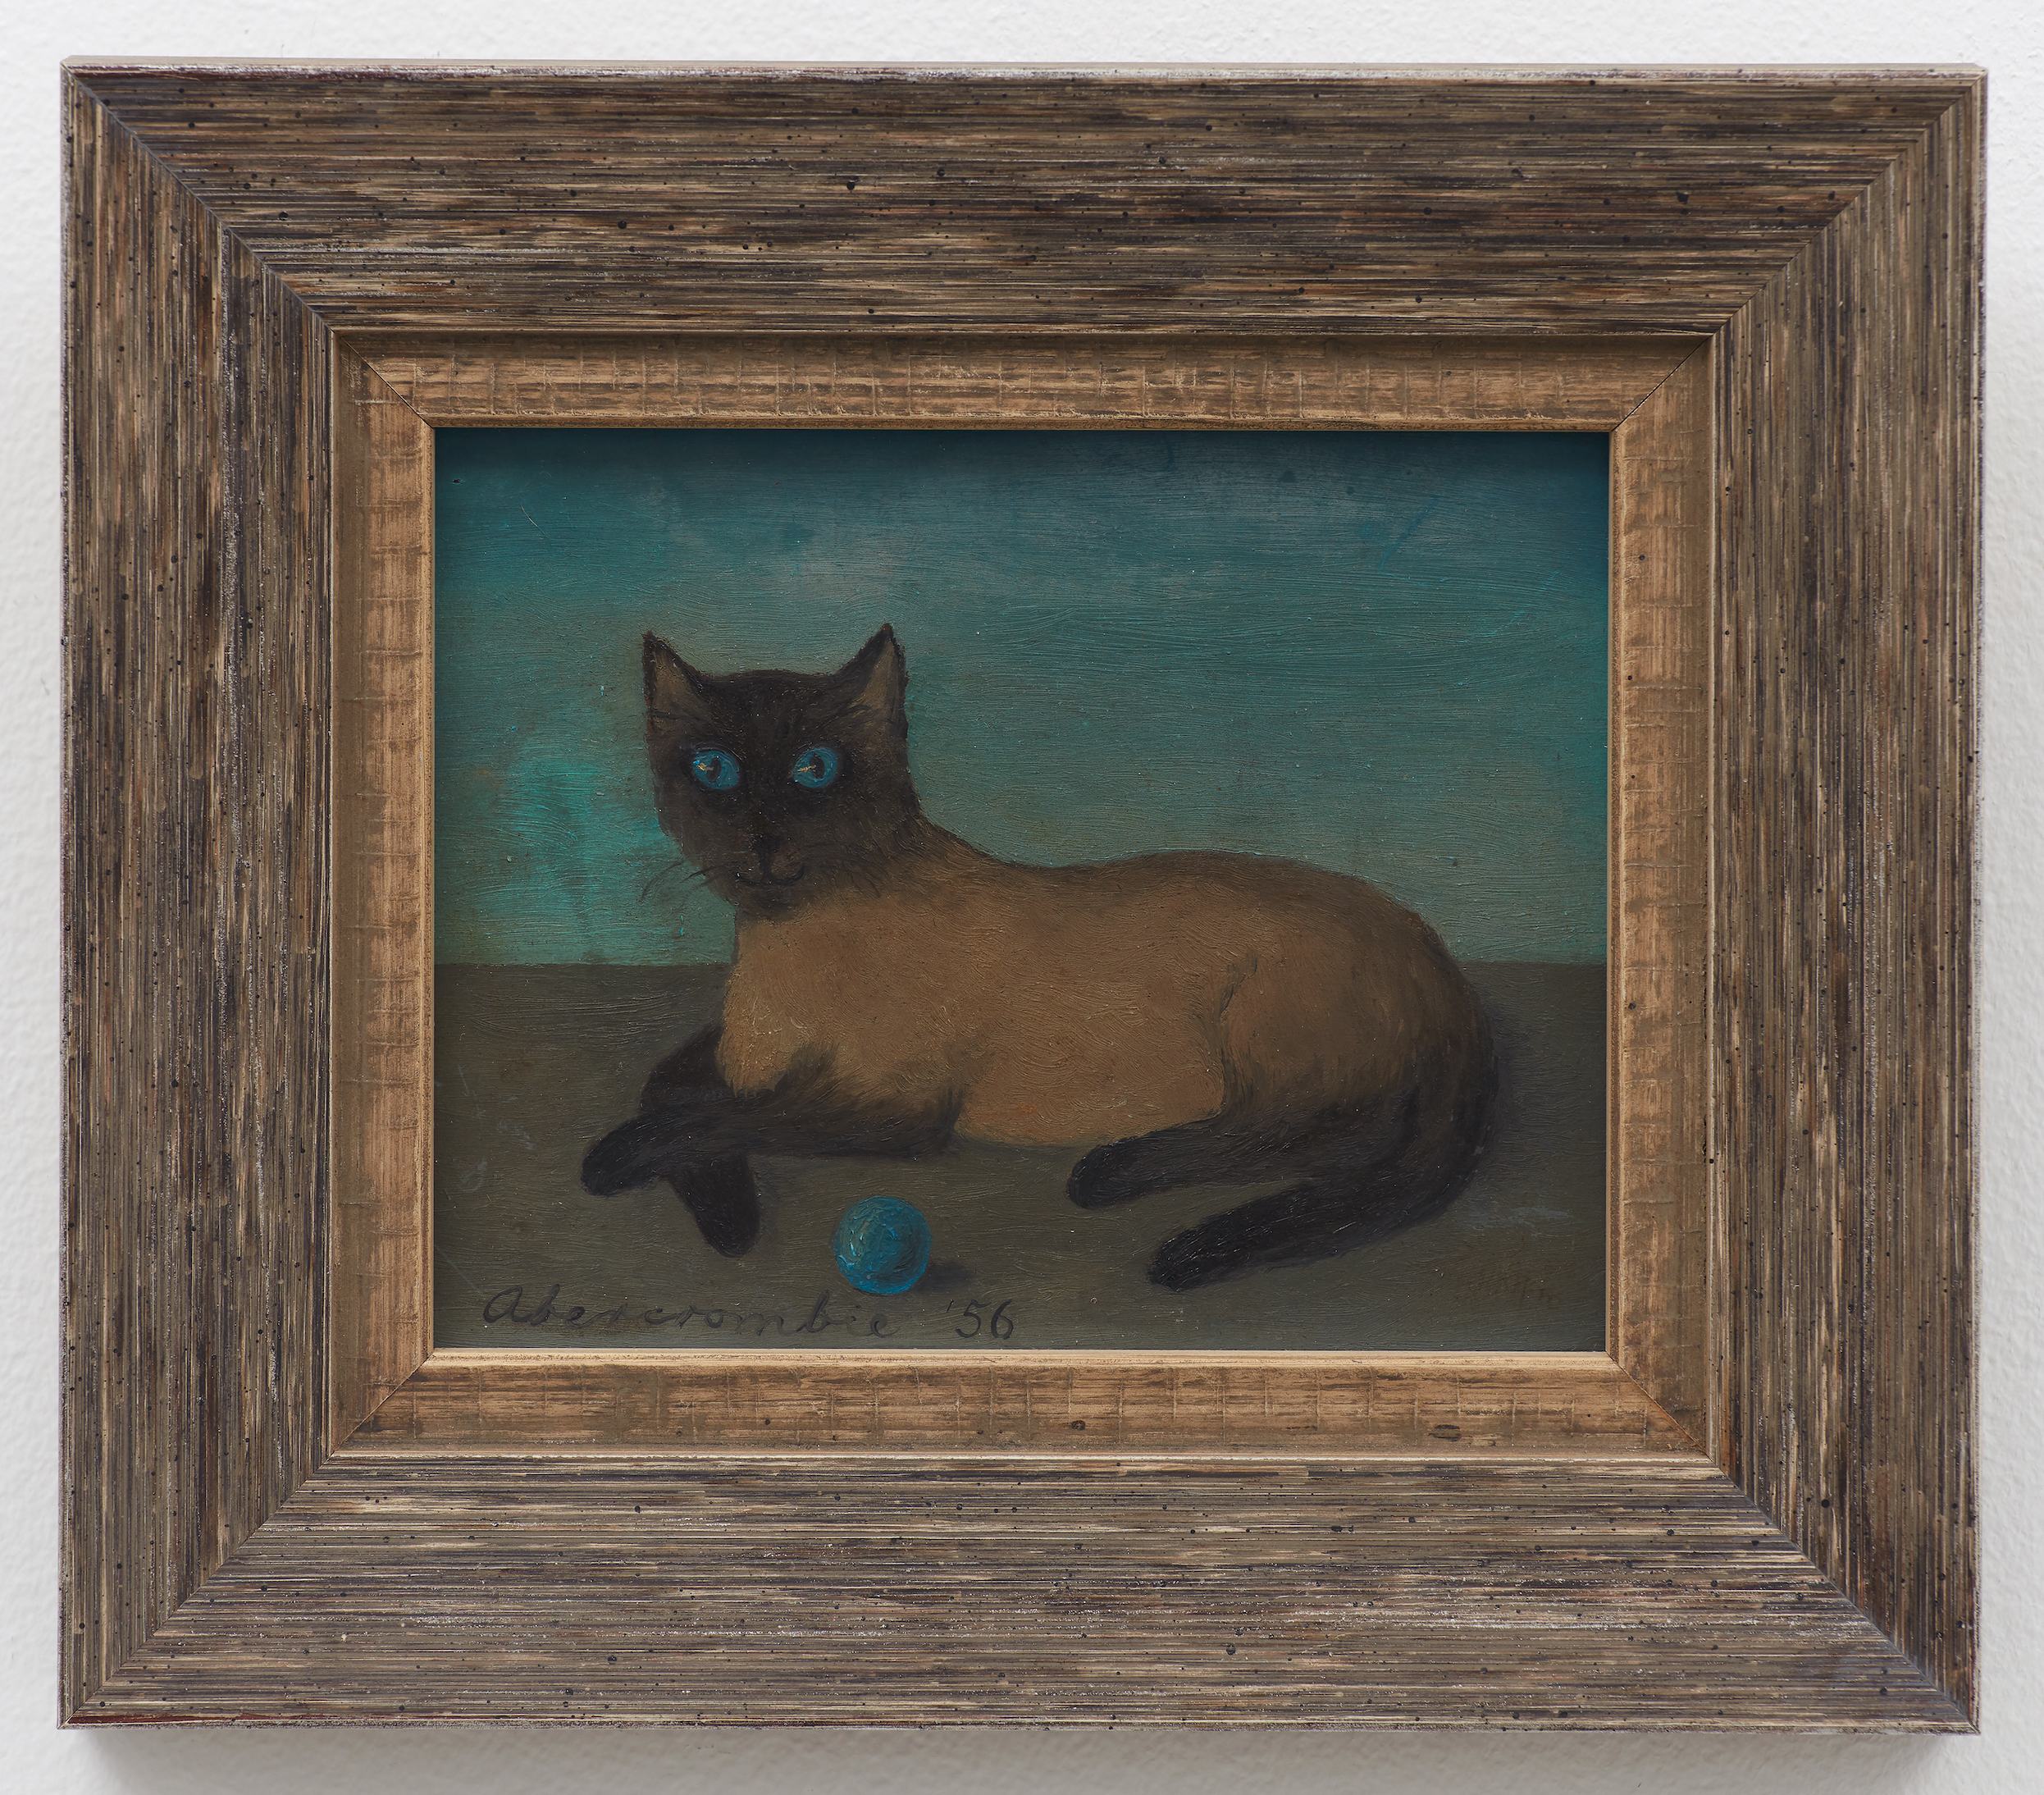 Untitled (Cat and Ball),  1956, Oil on board, 4 1/4 × 5 1/4 inches (unframed); 6 3/4 × 7 3/4 inches (framed). Collection of Laura and Gary Maurer.